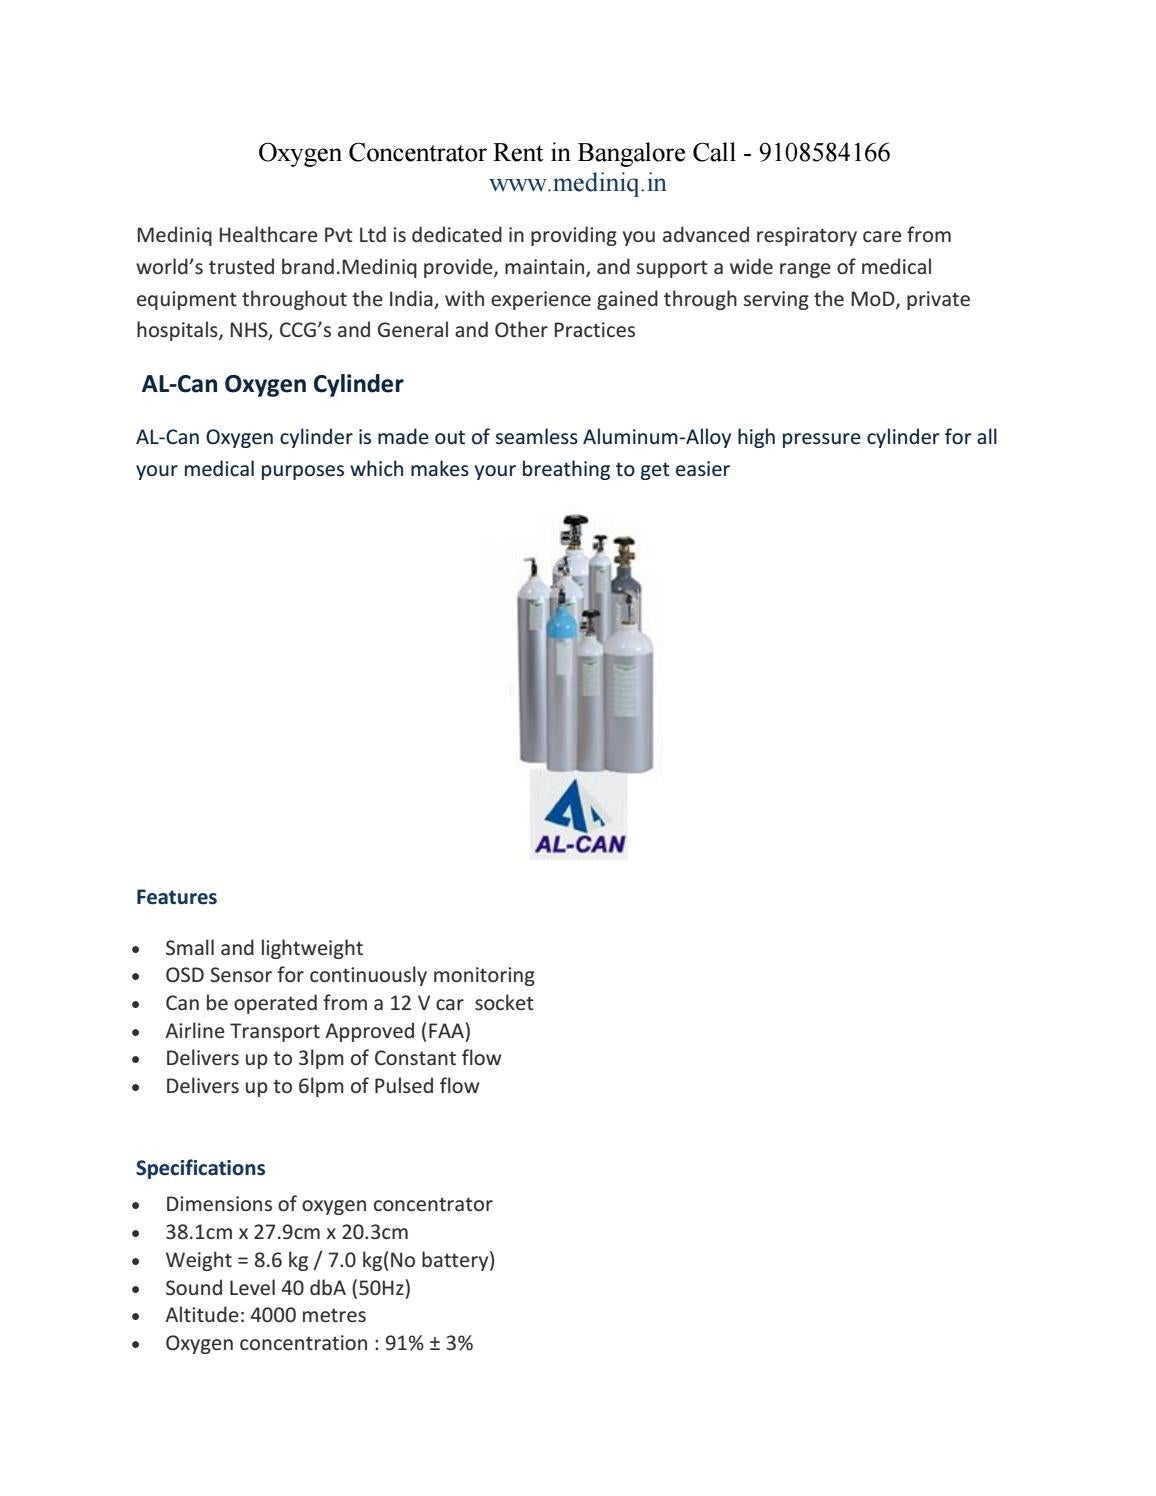 Oxygen Concentrator on rent in Bangalore Call - 9108584166